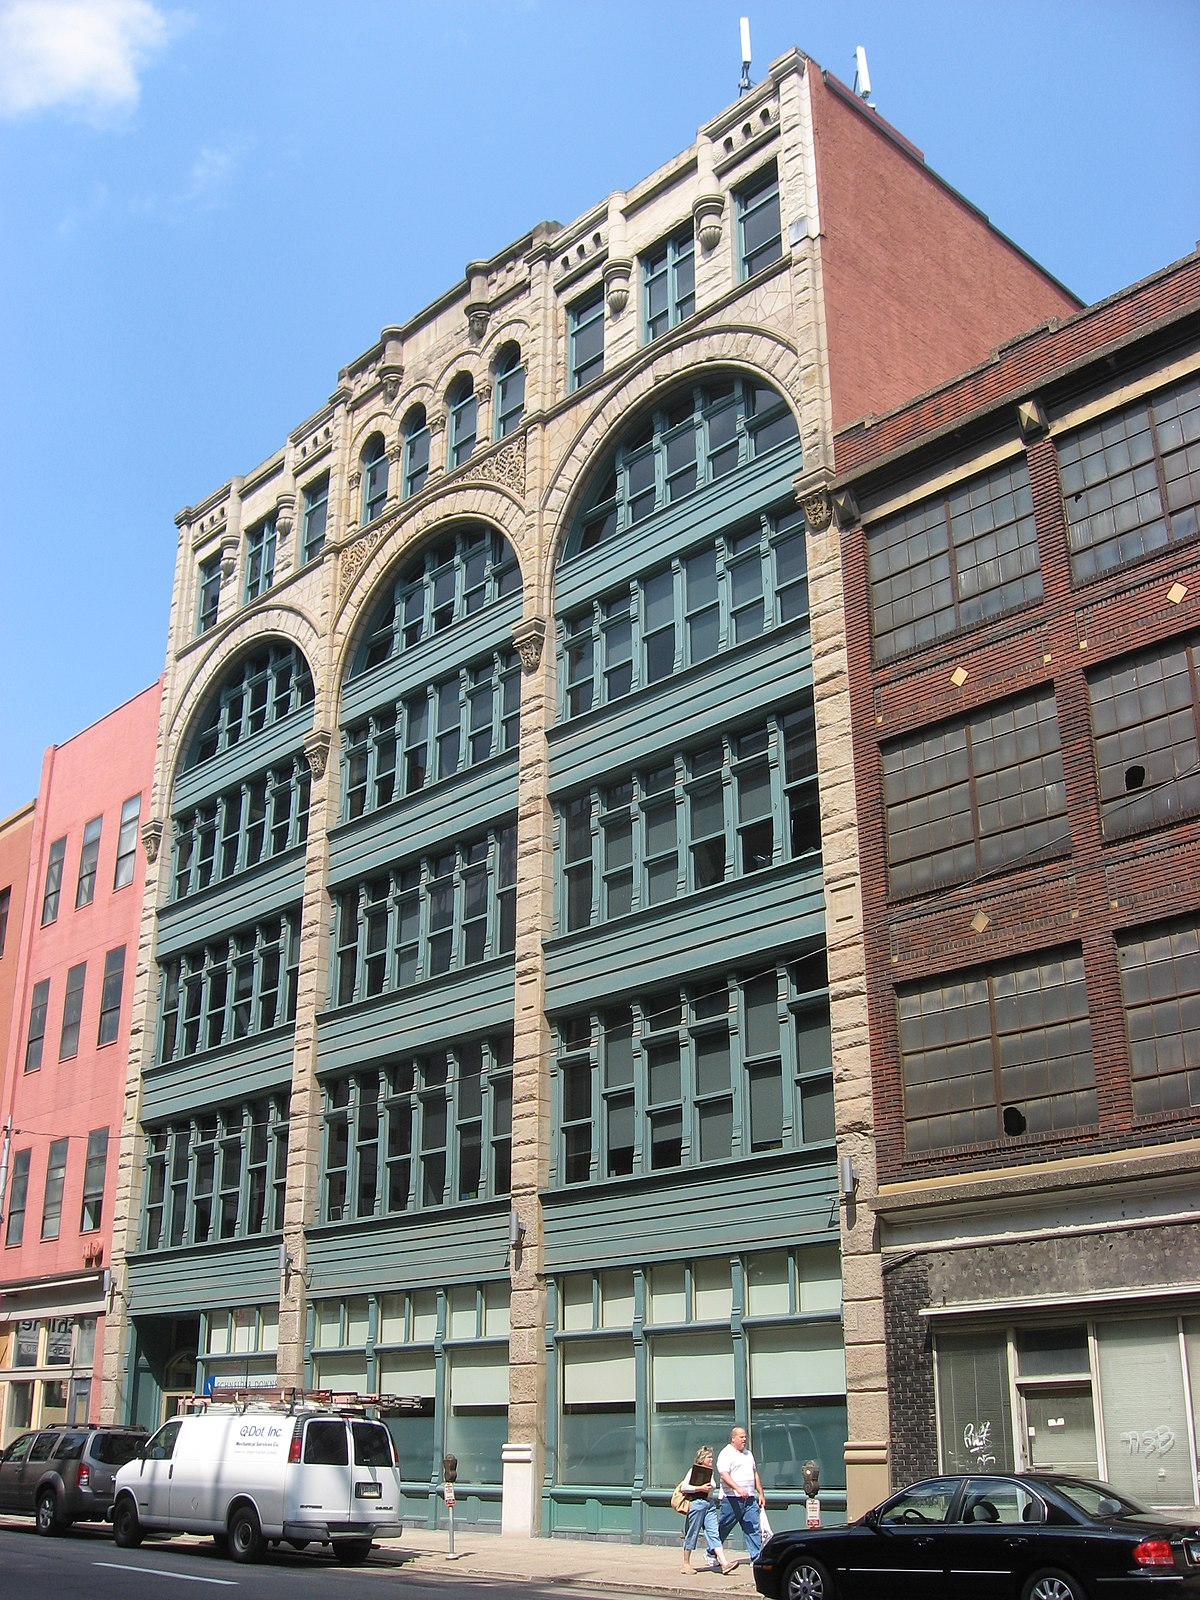 Byrnes & Kiefer Building - Wikipedia